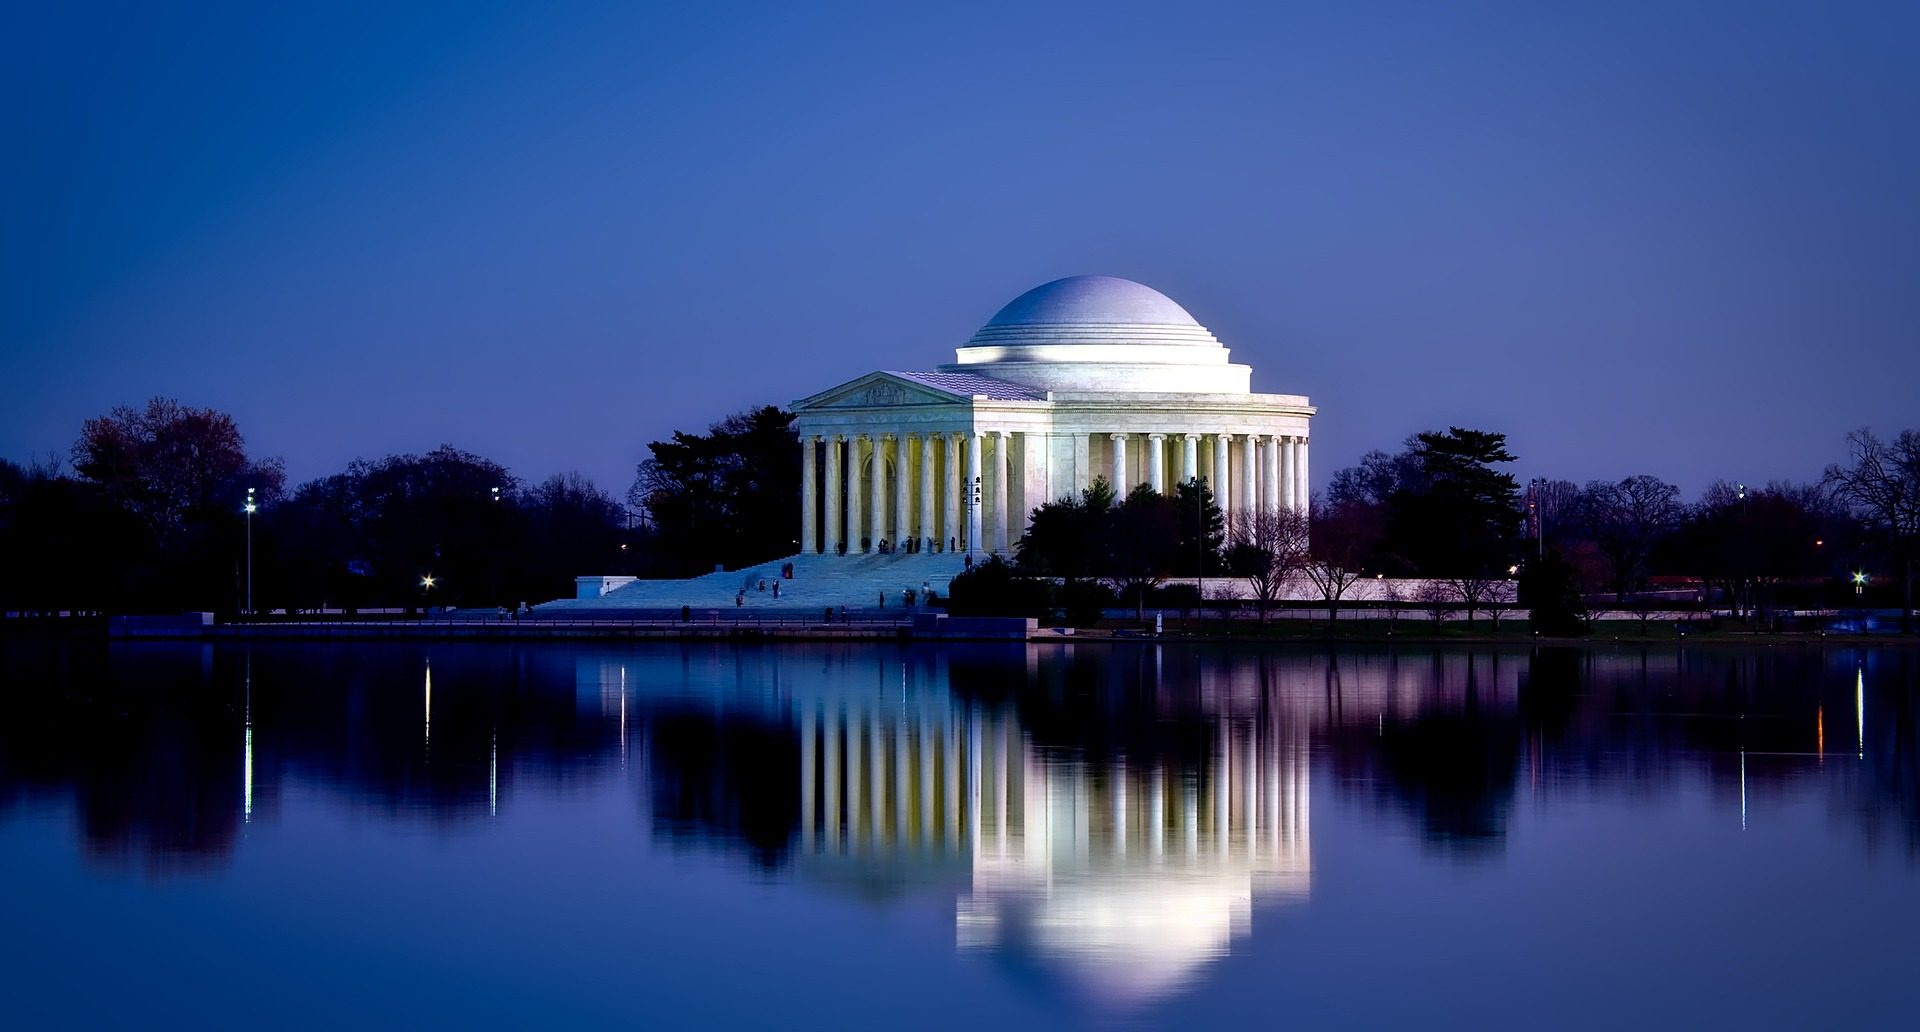 jefferson memorial 1626580 1920 6 Places to Enjoy in Washington, D.C. for Free